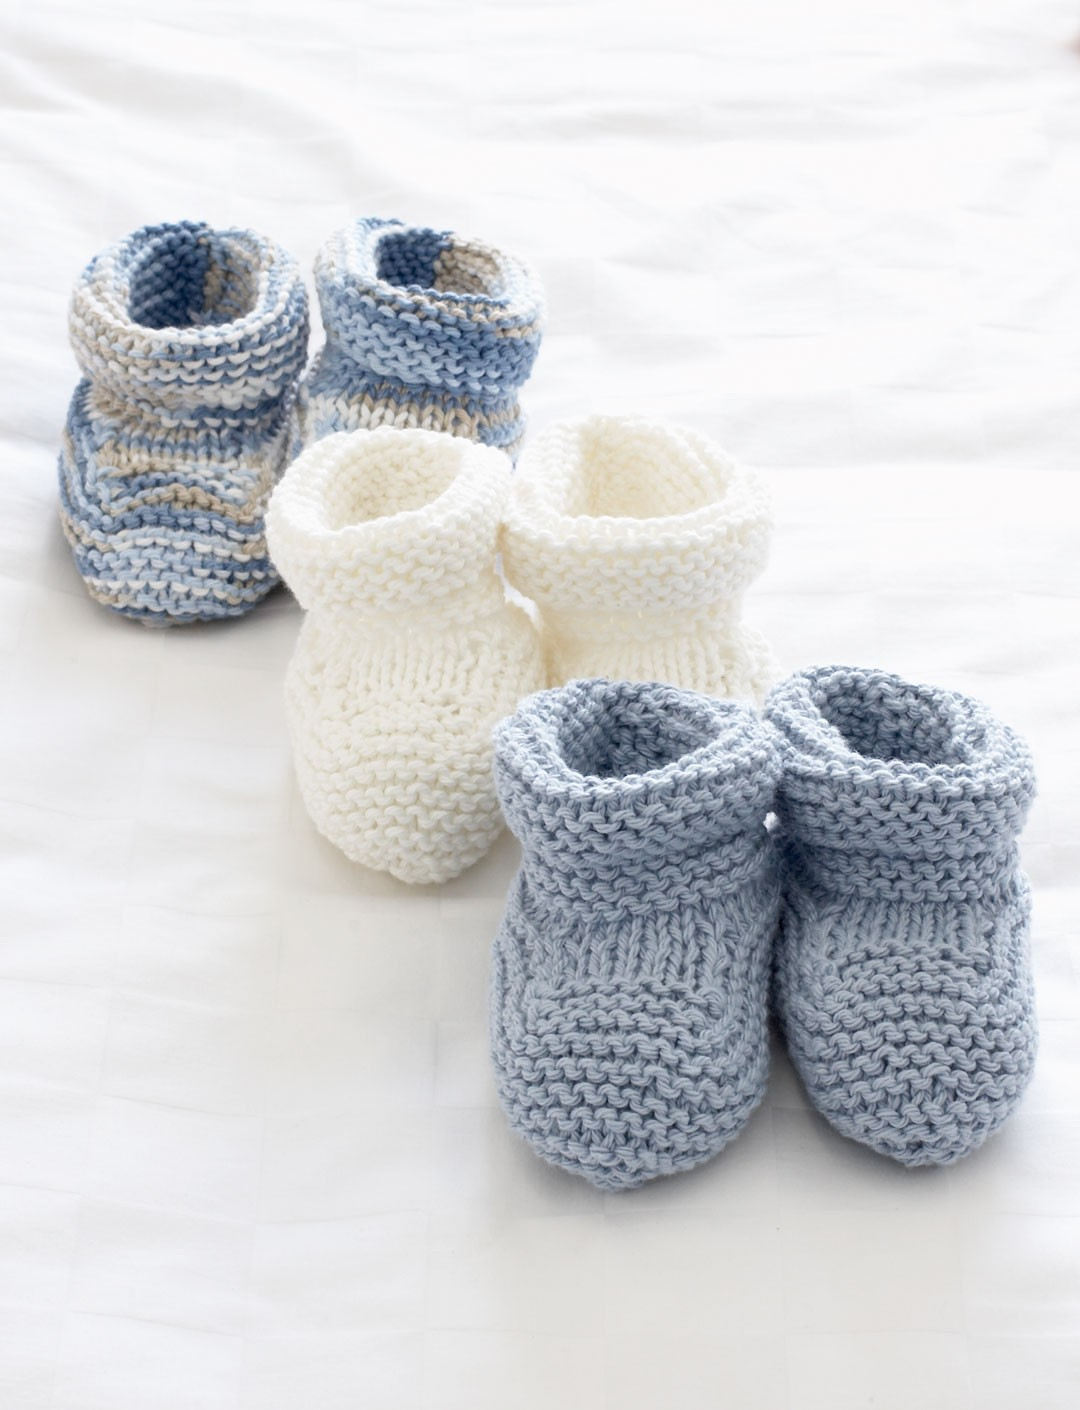 Knitting Baby Booties Patterns : Baby s booties patterns yarnspirations